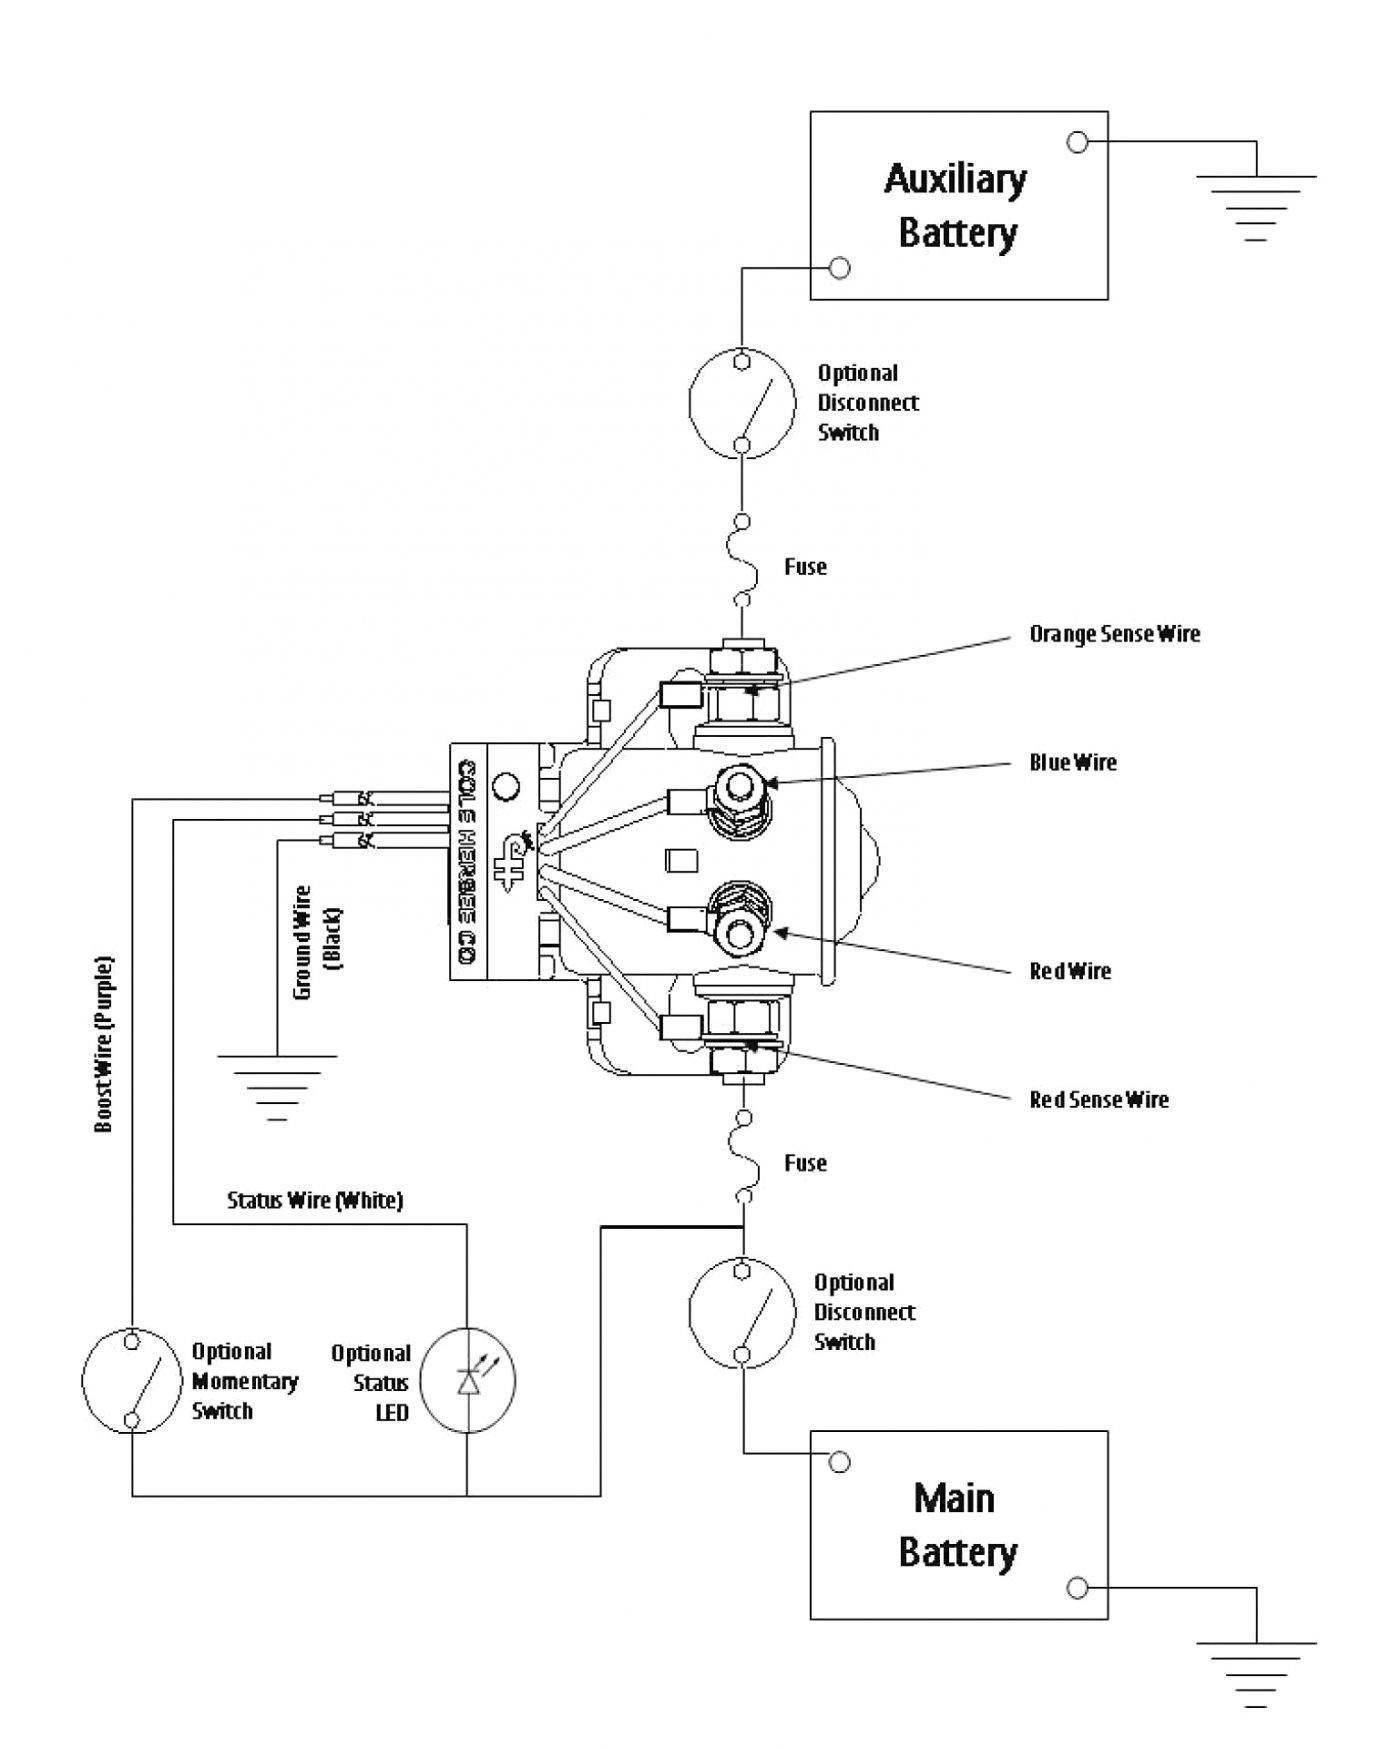 battery isolator wiring schematic Collection-Wiring Diagram Isolator Switch New Wiring Diagram Alternator To Battery New Wiring Diagram For Isolator 12-c